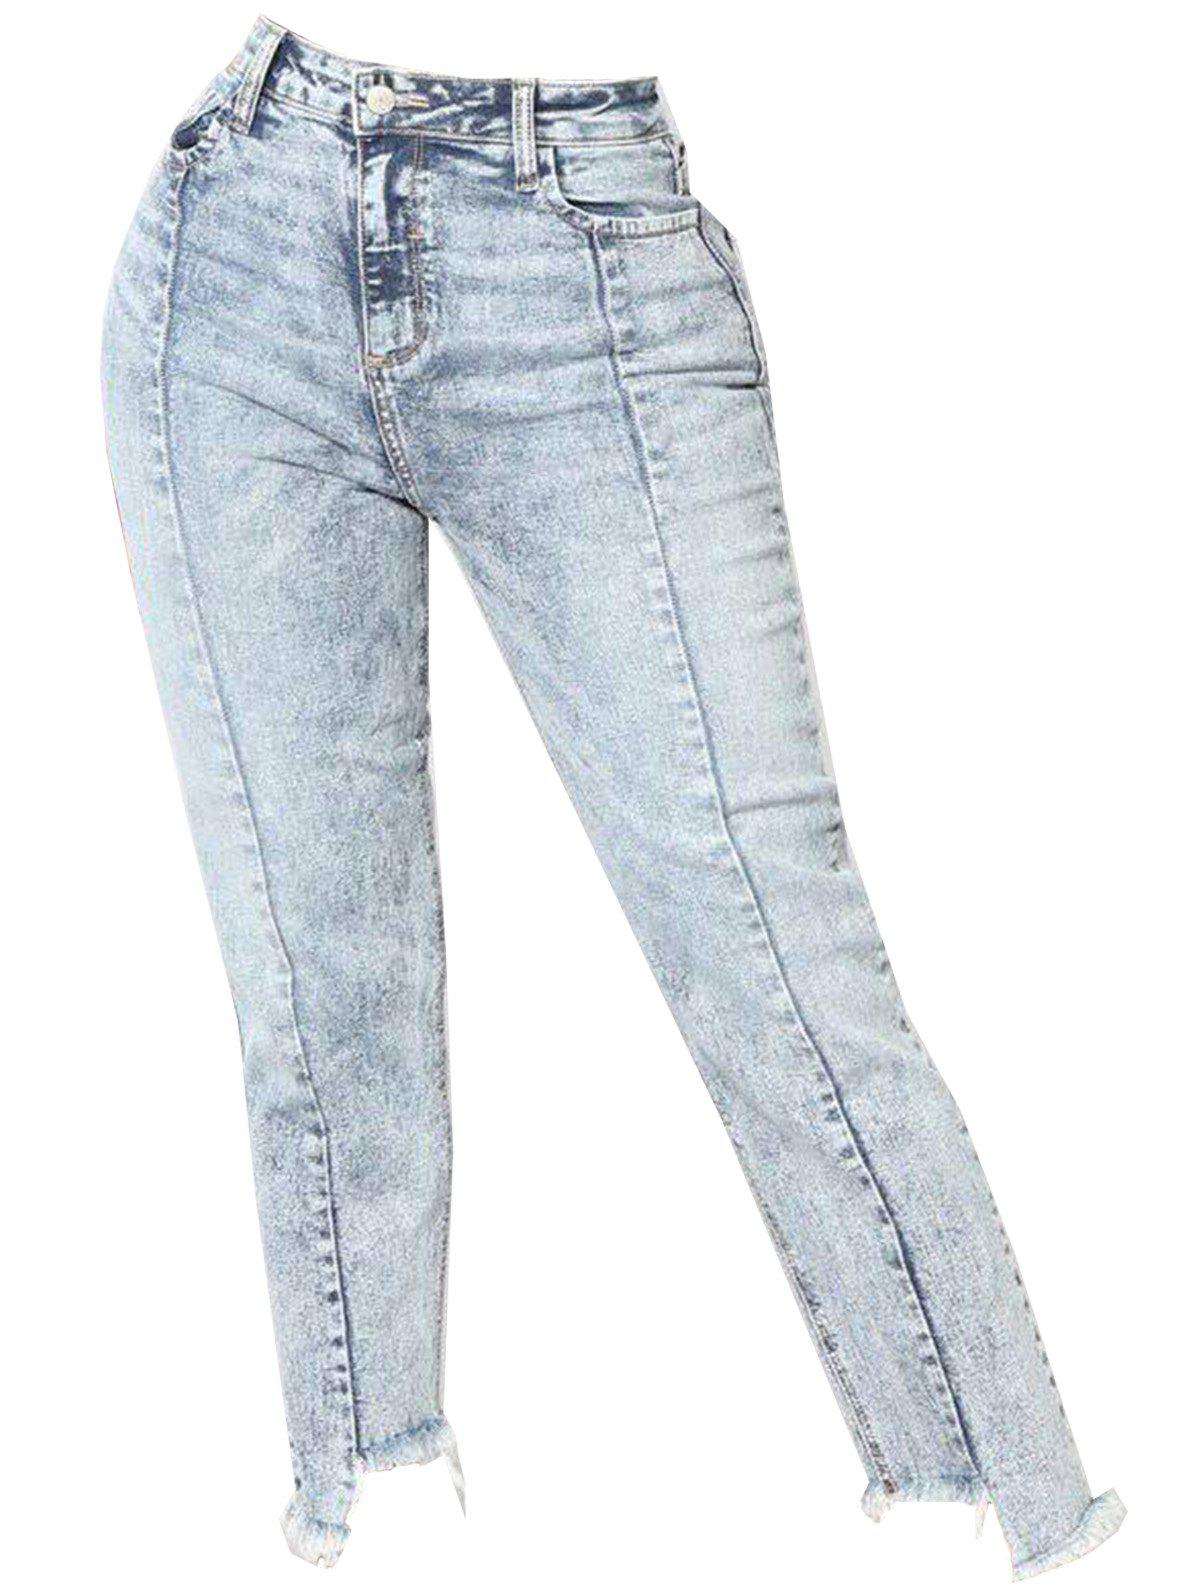 Shop Womens Fashion High Waisted Destroyed Casual Jeans Denim